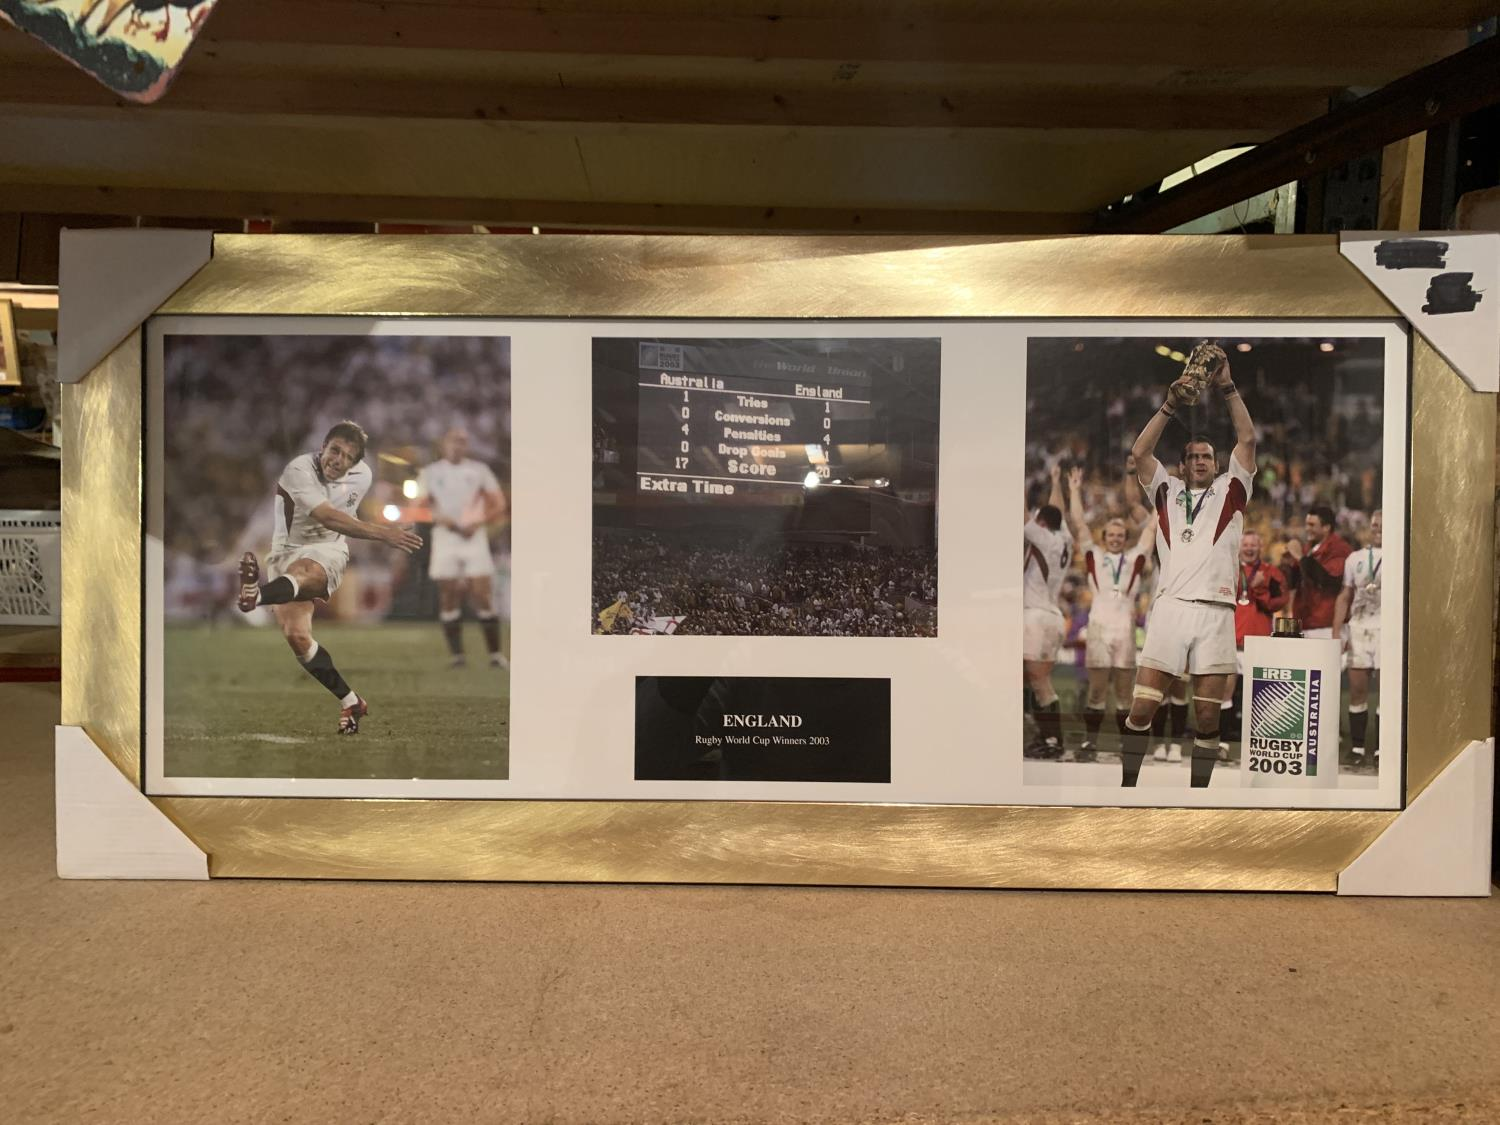 A FRAMED PRINT OF RUGBY WORLD CUP WINNERS 2003